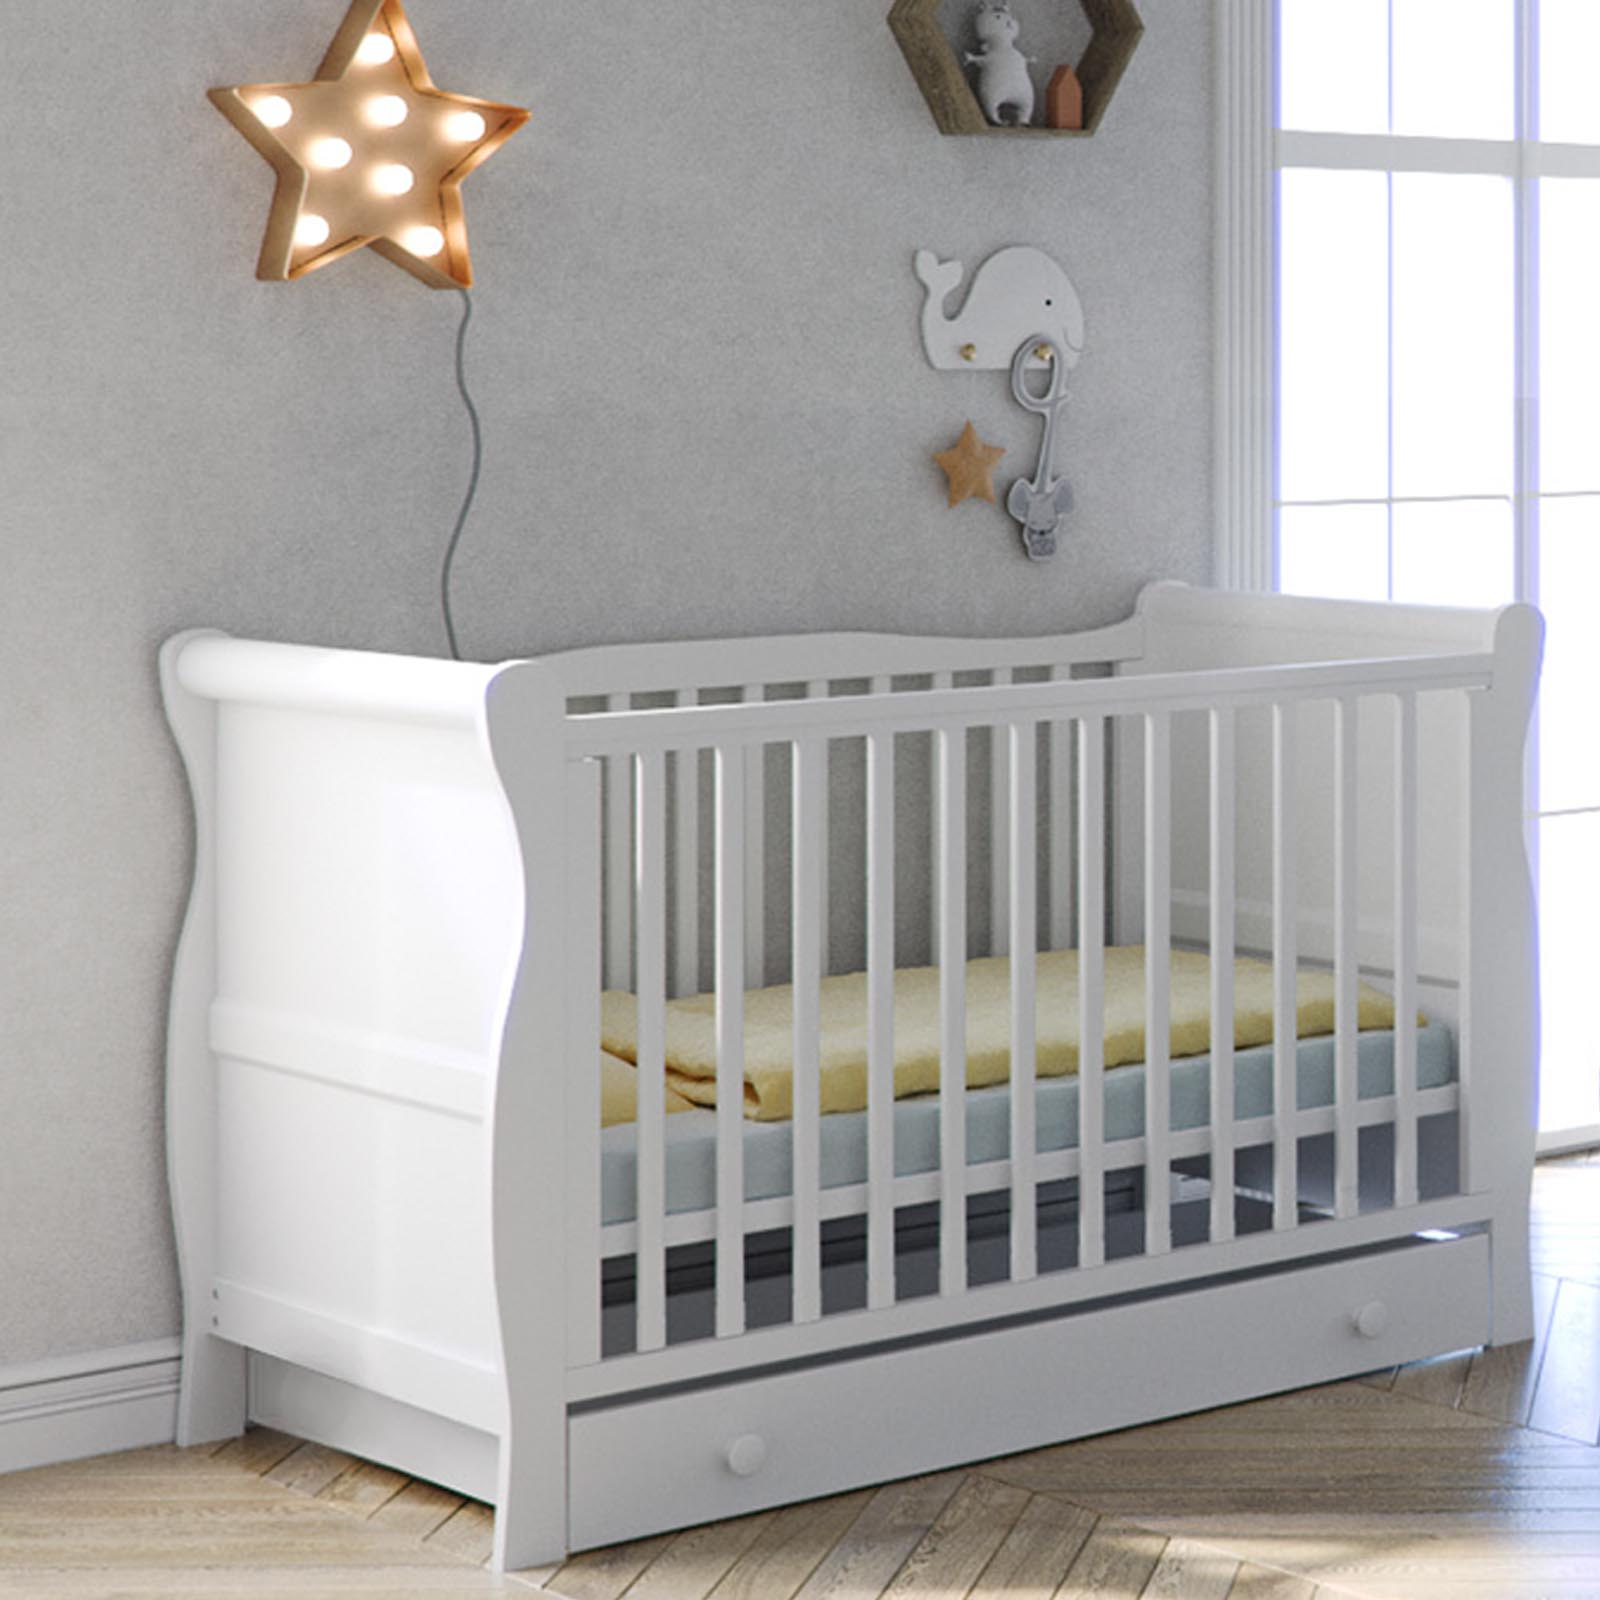 Little Acorns Sleigh Cot Bed With Deluxe Maxi Air Cool ...